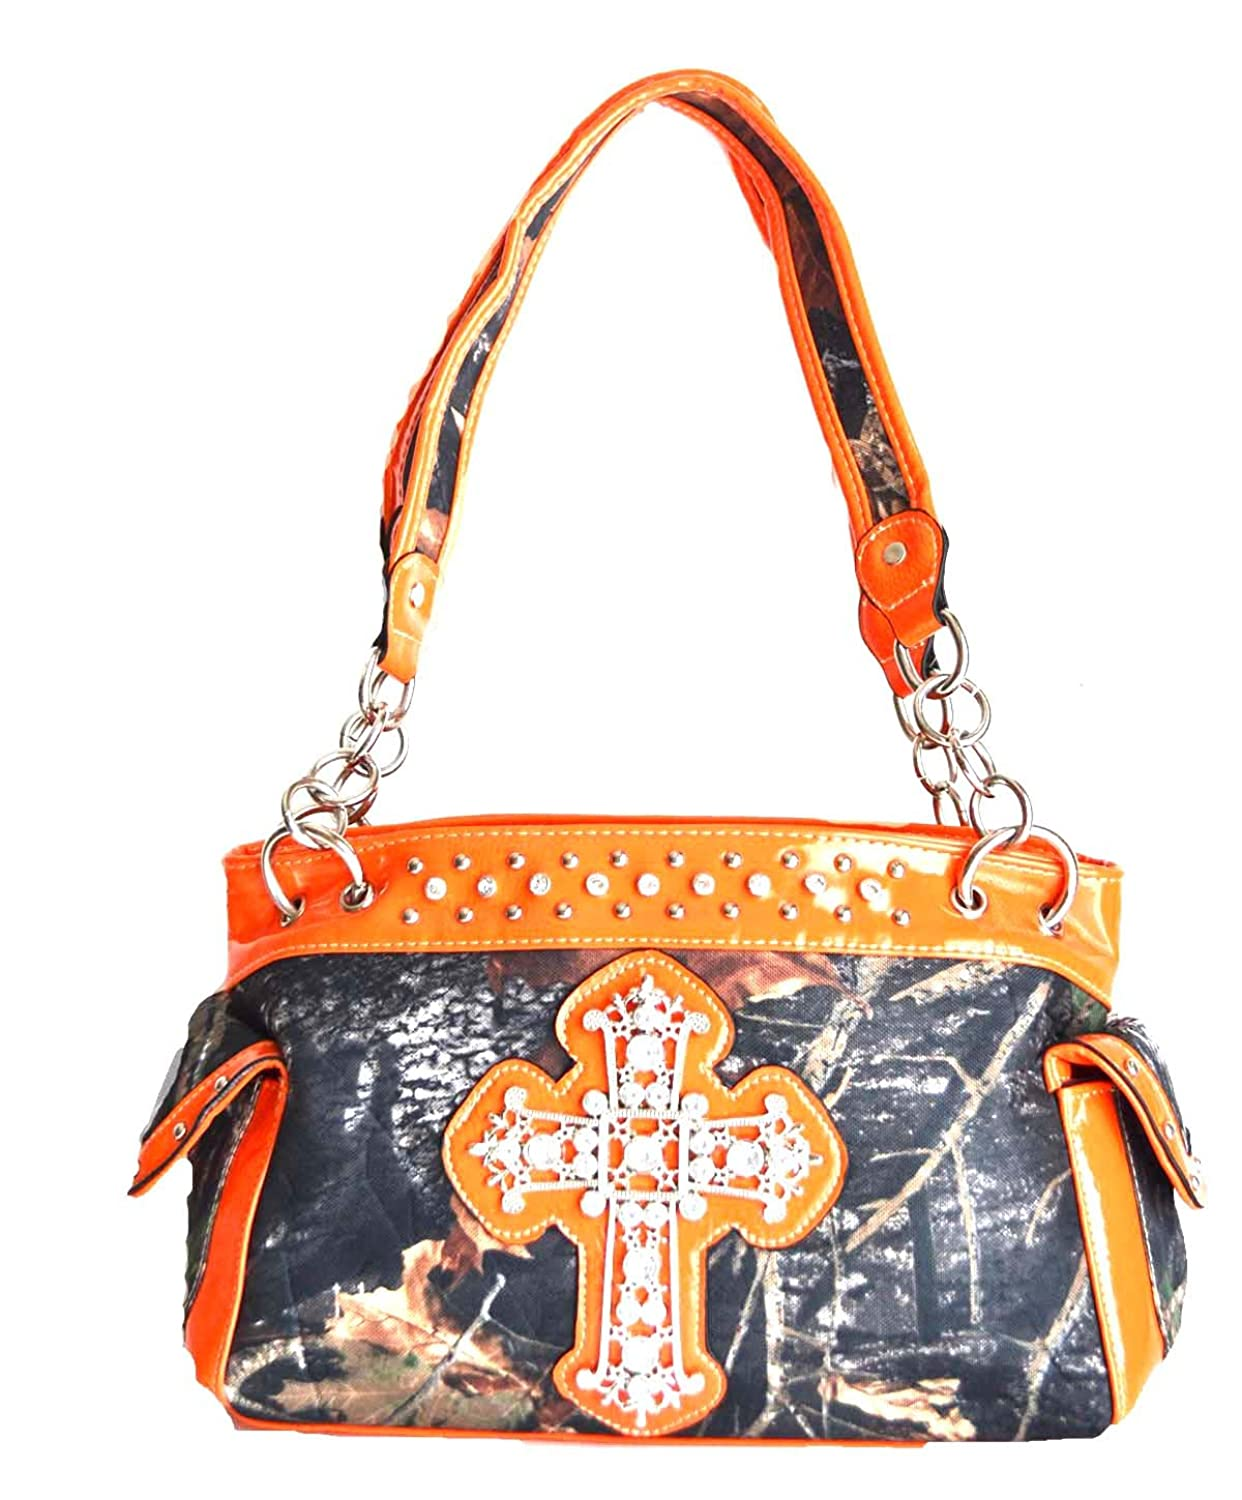 Western Camo Mossy Oak Rhinestone Cross Handbag Purse Orange